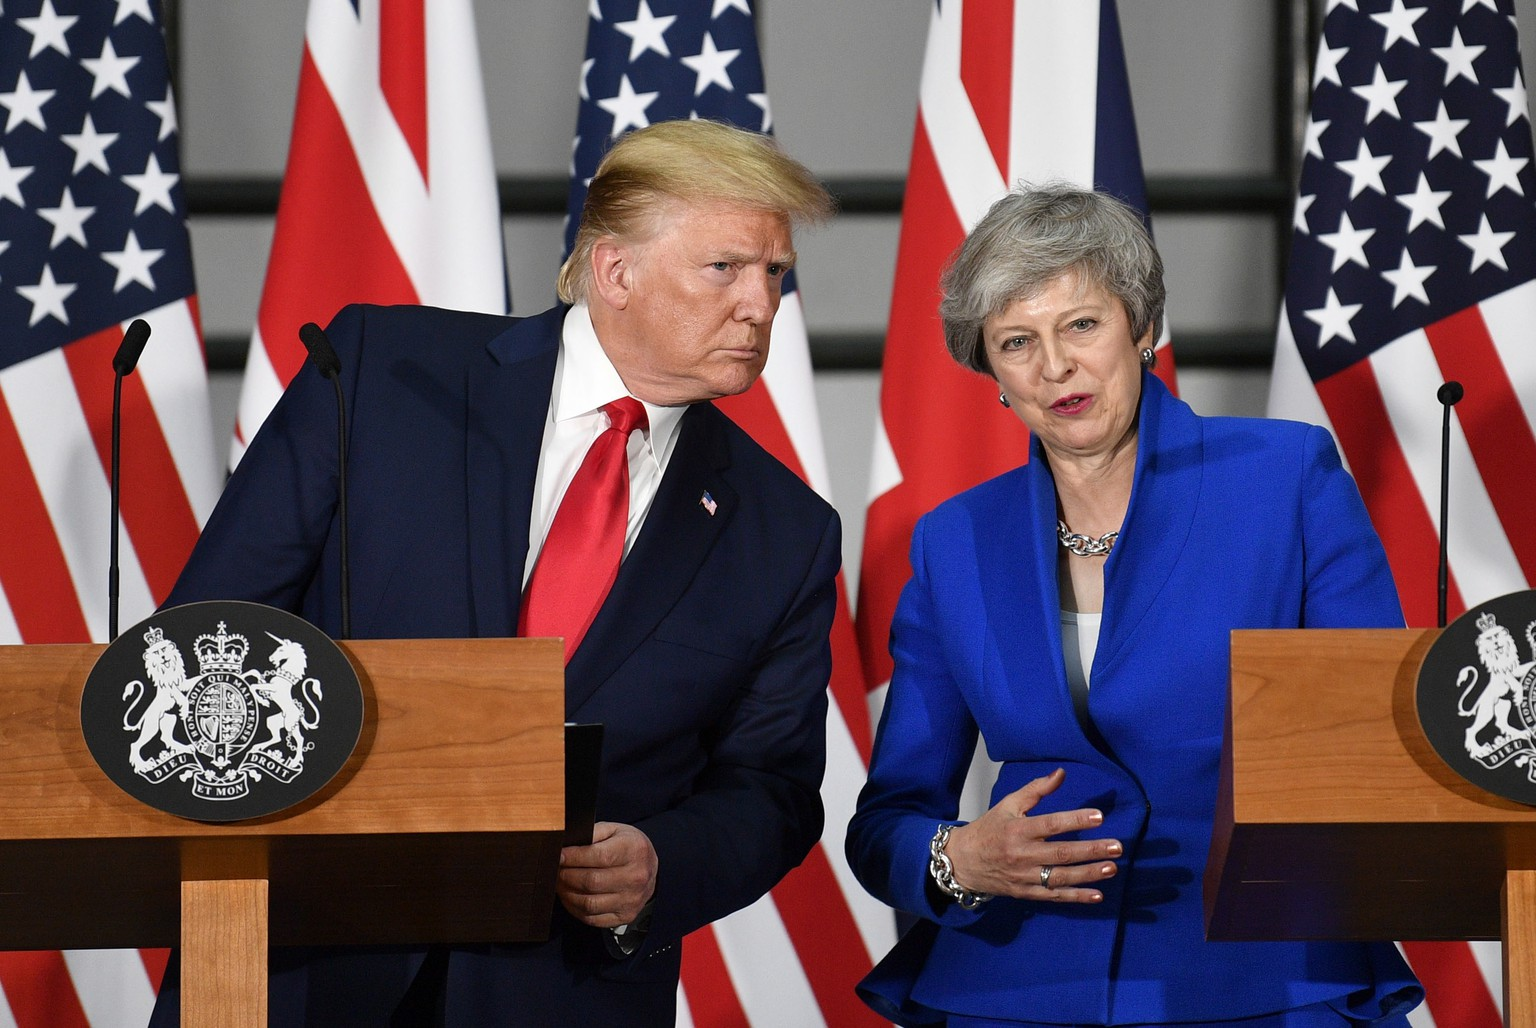 epa07624939 US President Donald J. Trump (L) and Britain's Prime Minister Theresa May (R) speak at a press conference at the Foreign and Commonwealth Office in London, Britain, 04 June 2019. US President Trump and his wife are on a three-day official visit to Britain.  EPA/NEIL HALL